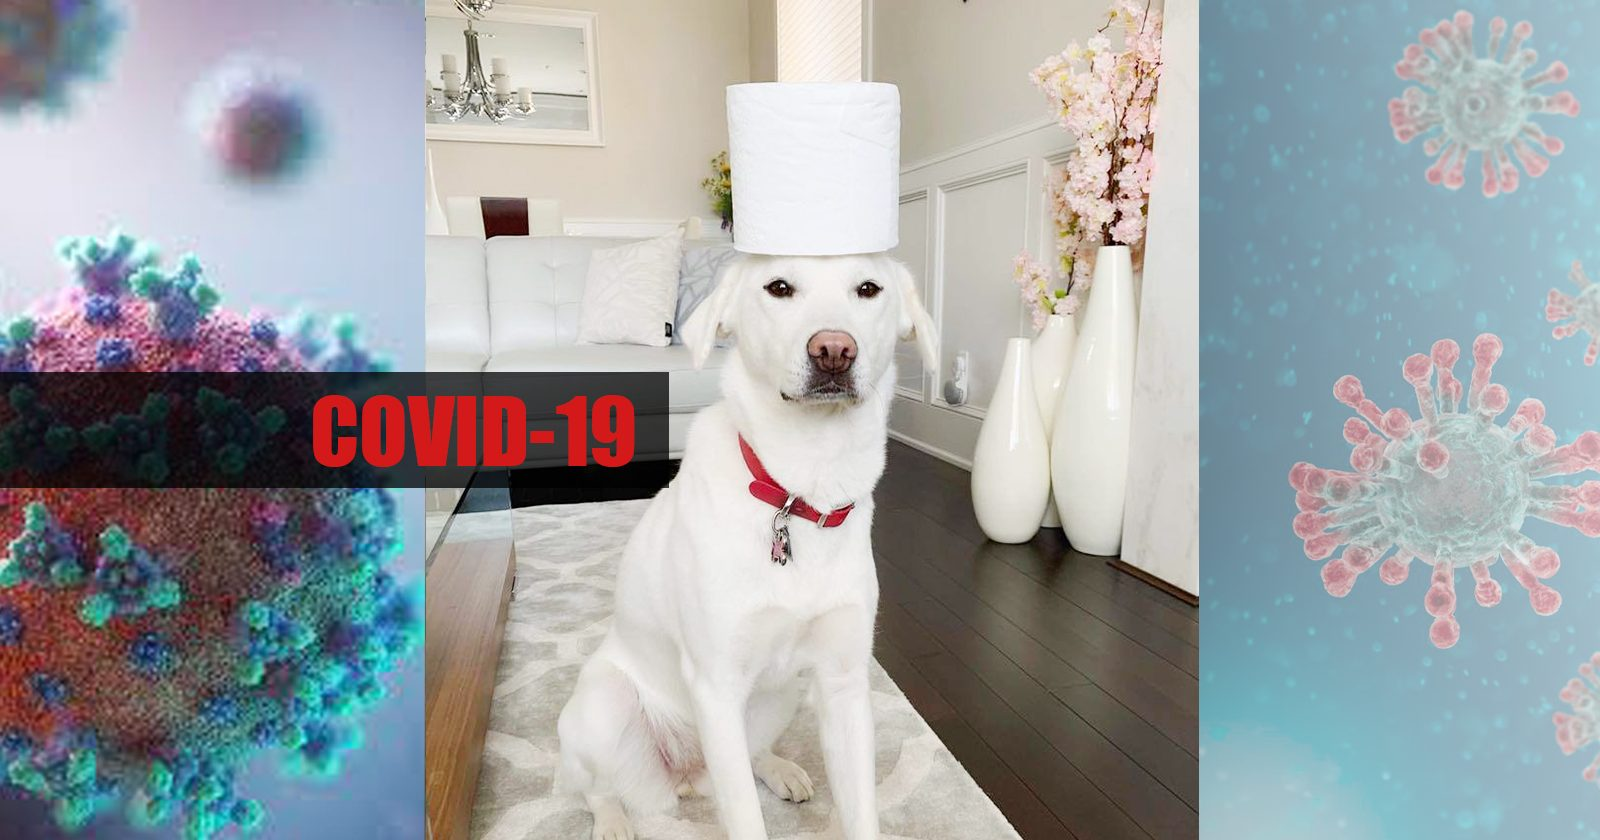 COVID-19: What We're Doing at Free Korean Dogs